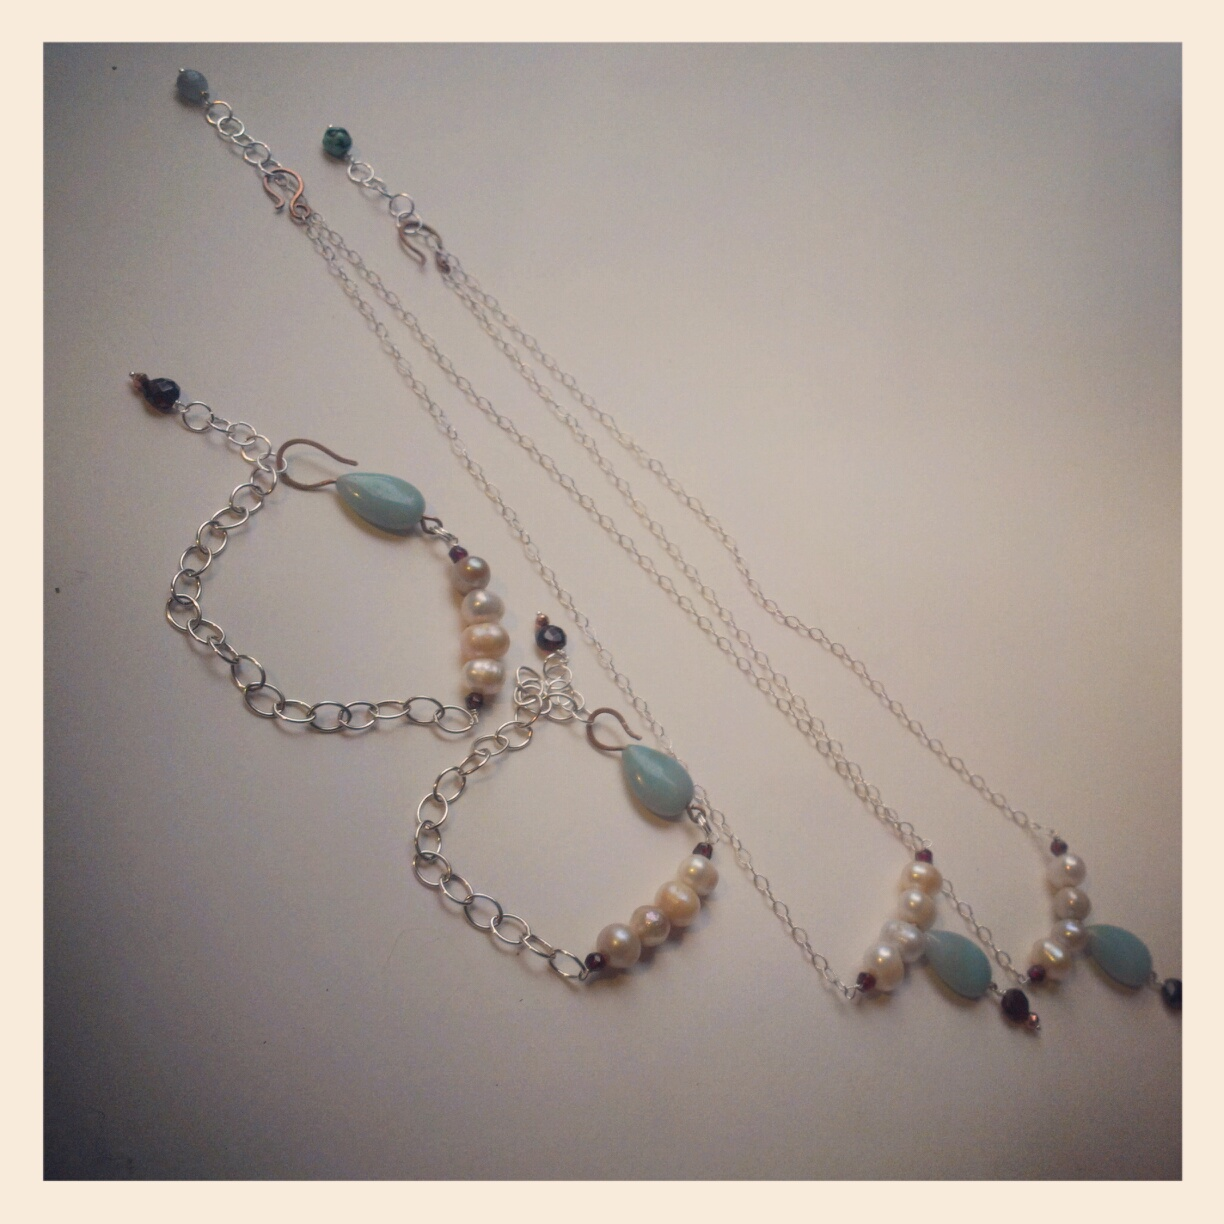 A commissioned series completed in 2012 featuring amazonite, freshwater pearls, pyrite, sterling silver, and copper.